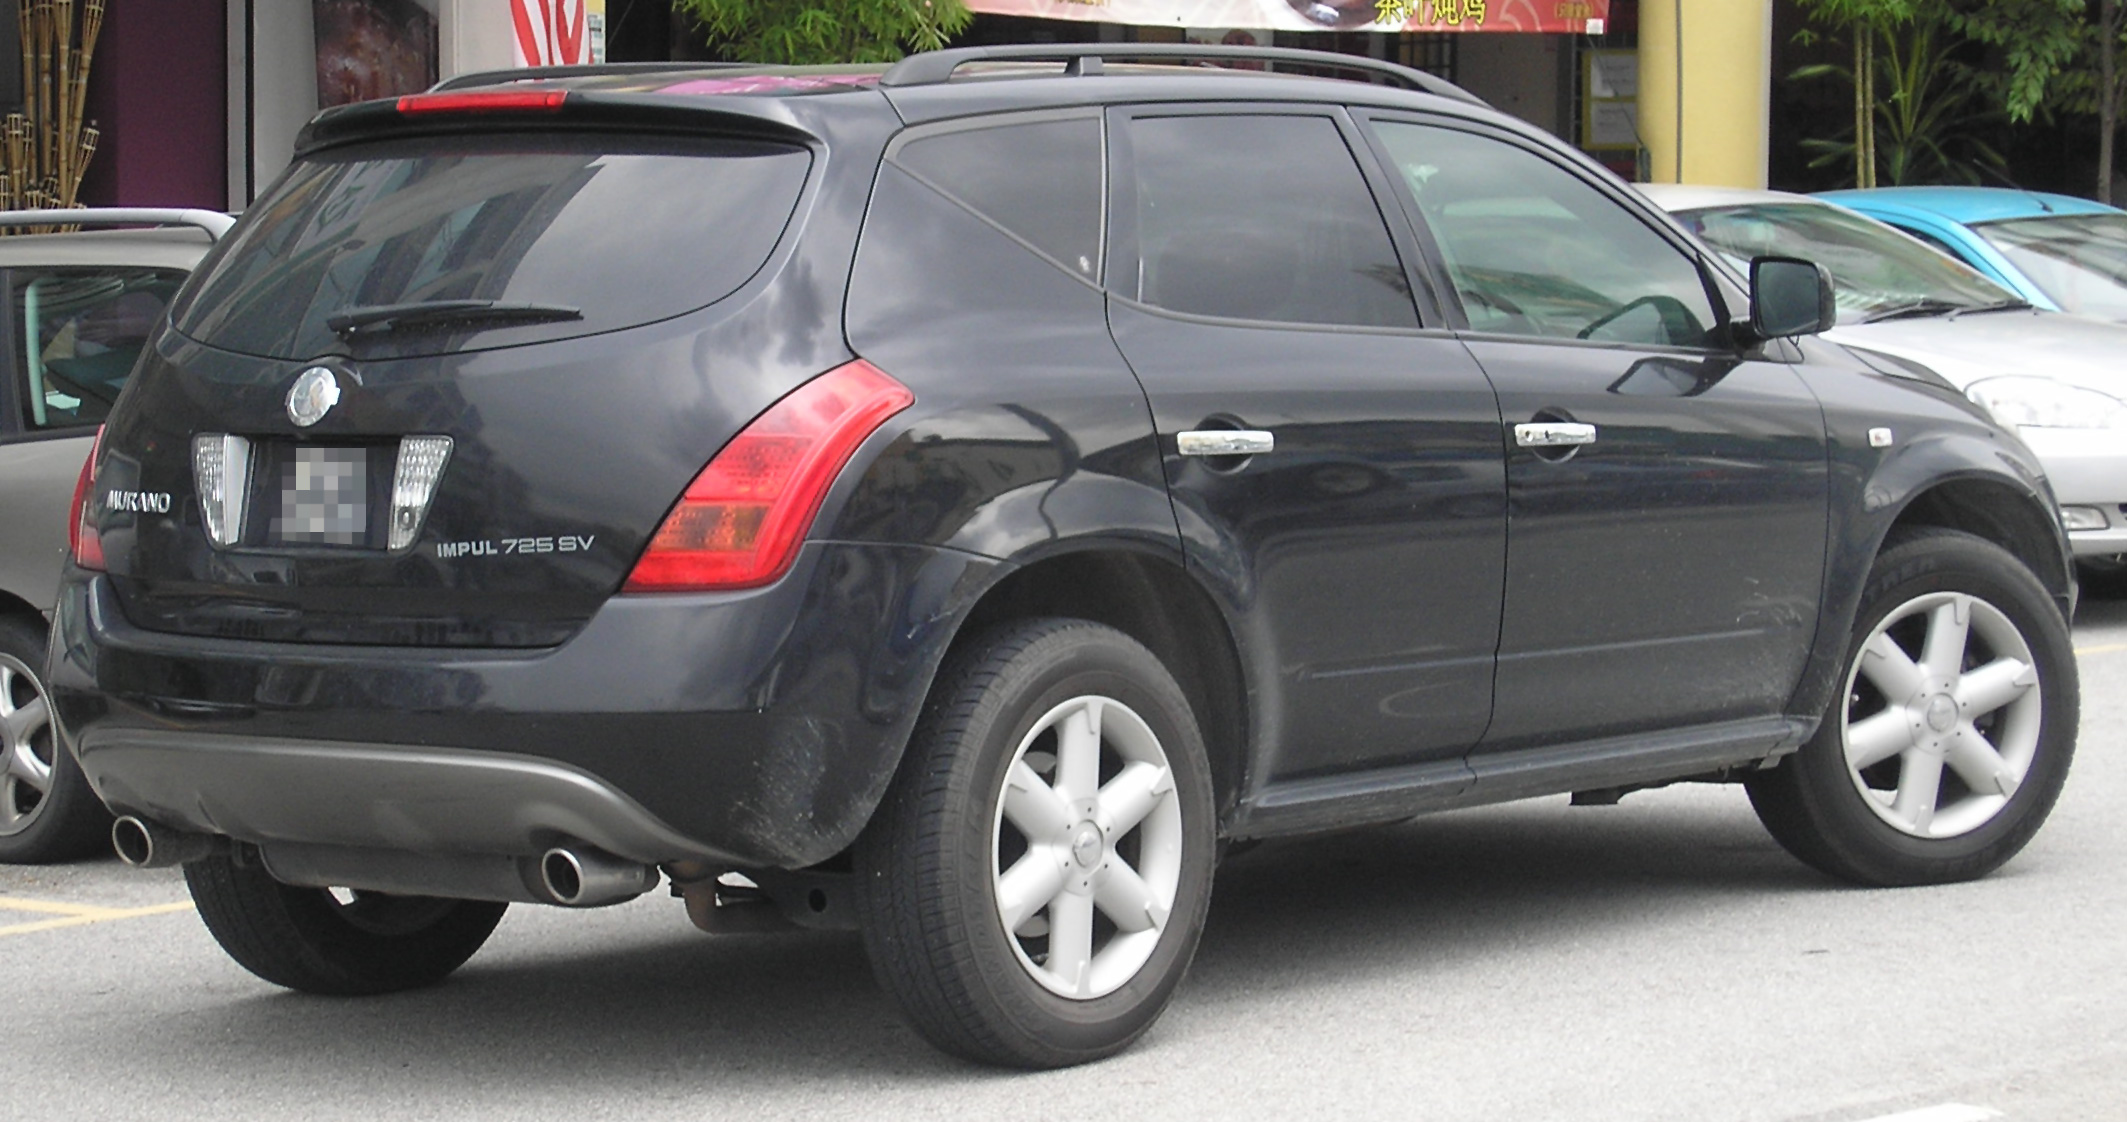 Nissan Murano Tether Anchors Gtcarlot additionally Kilimas in addition Nissan Murano Se Awd Suv Rear Seat furthermore Maxresdefault as well D Aftermarket Wheels My Murano Murano. on 2007 nissan murano